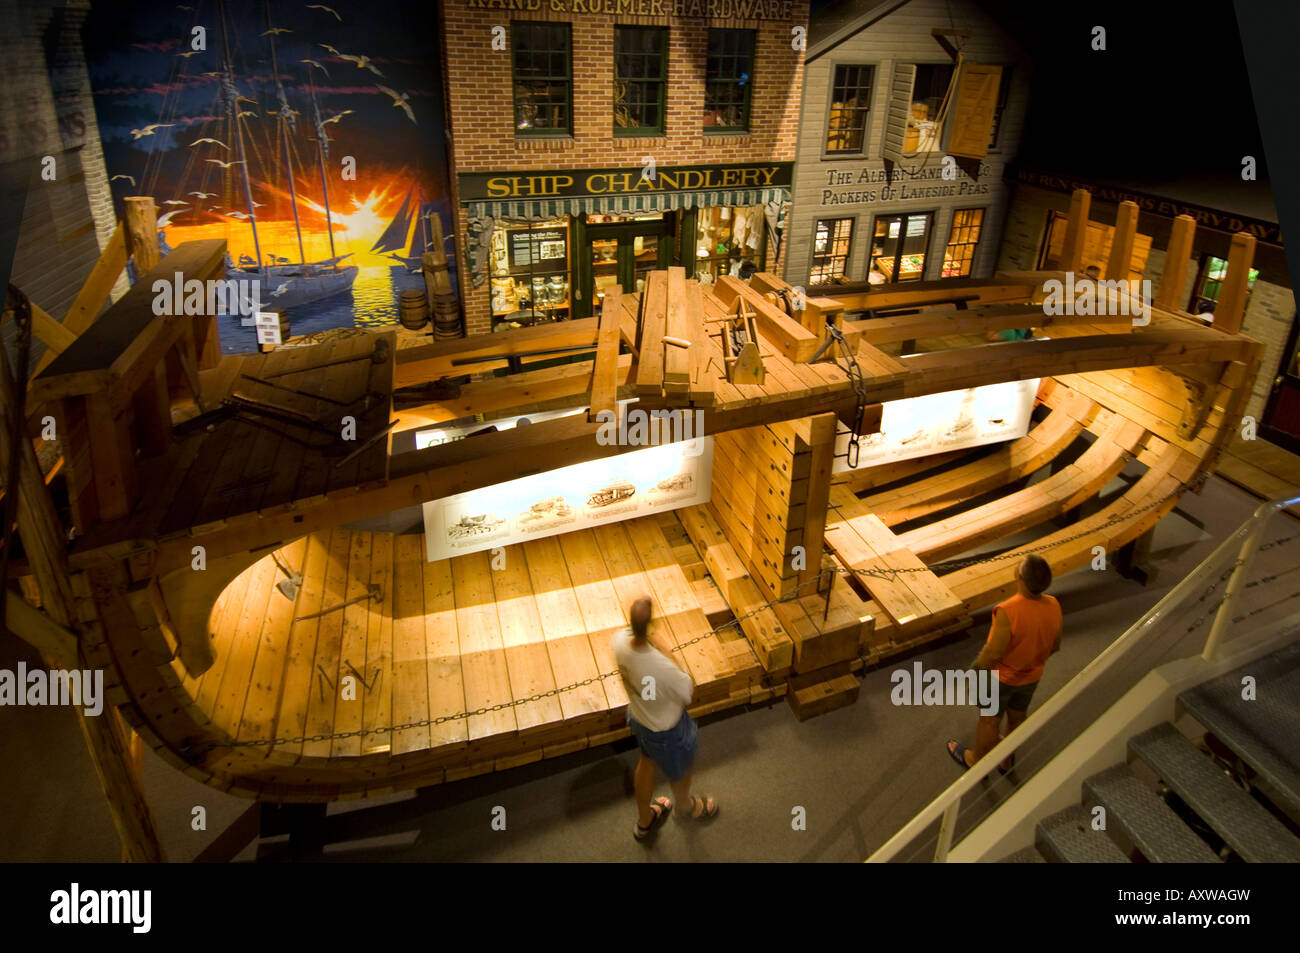 Ship Chandlery Display At The Wisconsin Maritime Museum In ...